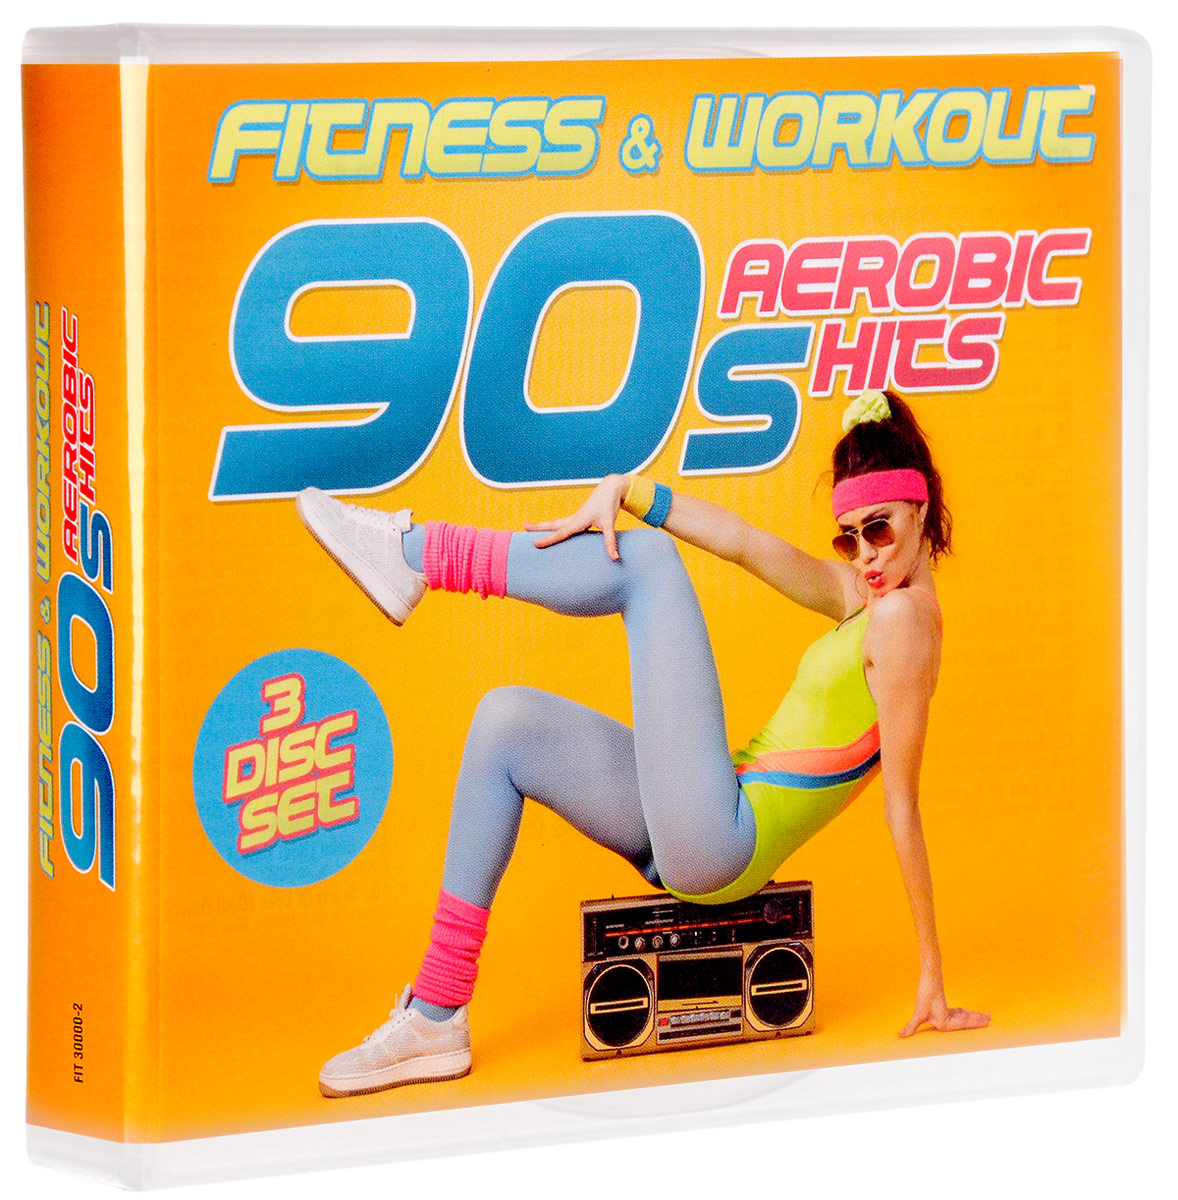 Fitness & Workout. 90s Aerobic Hits (3 CD)